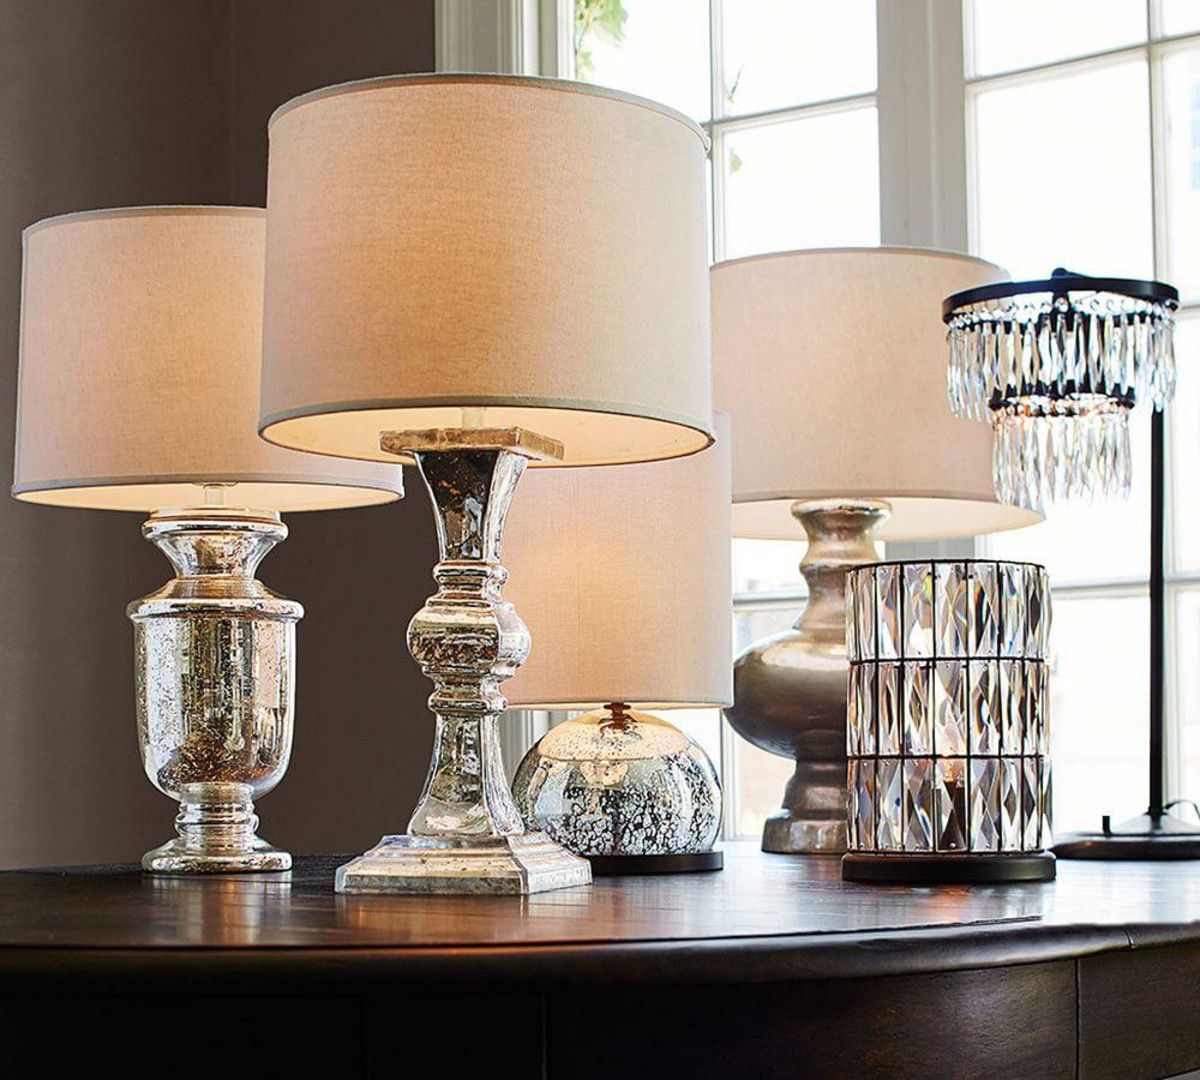 Blown glass table lamps - Lamps Hand Blown Glass Table Lamps Frosted Glass Table Lamp Murano Glass Table Lamp Italian